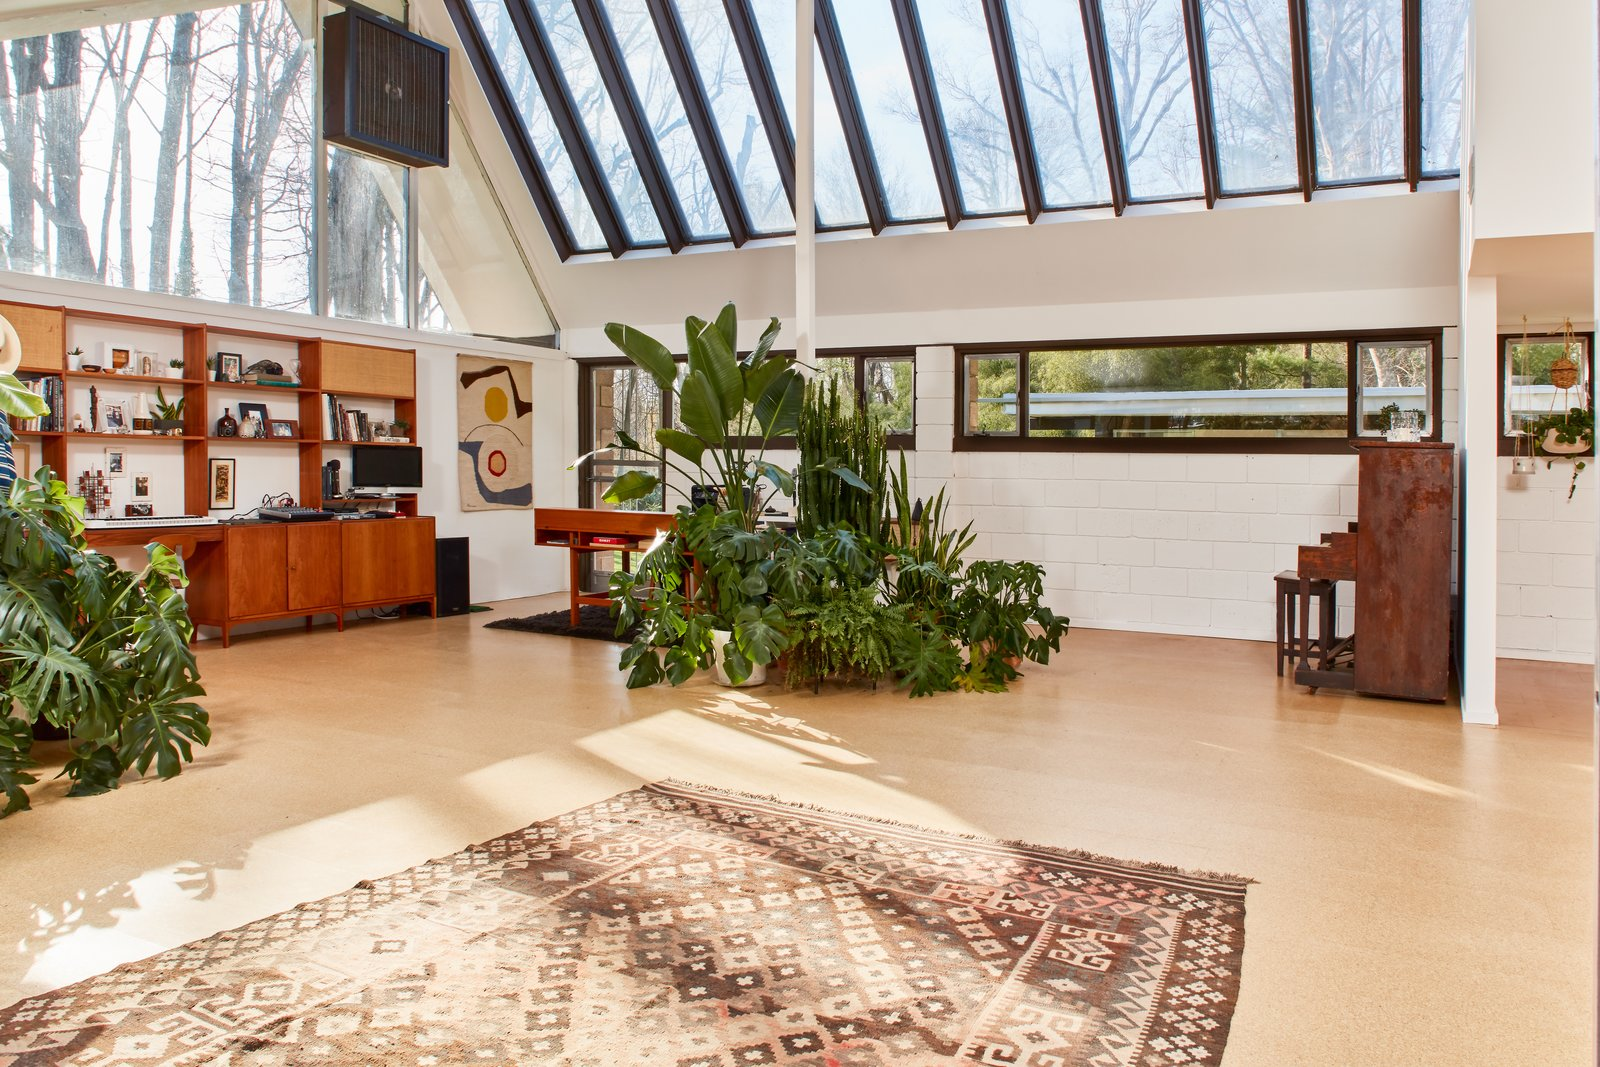 Photo 3 of 13 in The Stunningly Restored Hassrick Residence by Richard Neutra Hits the Market at $2.2M